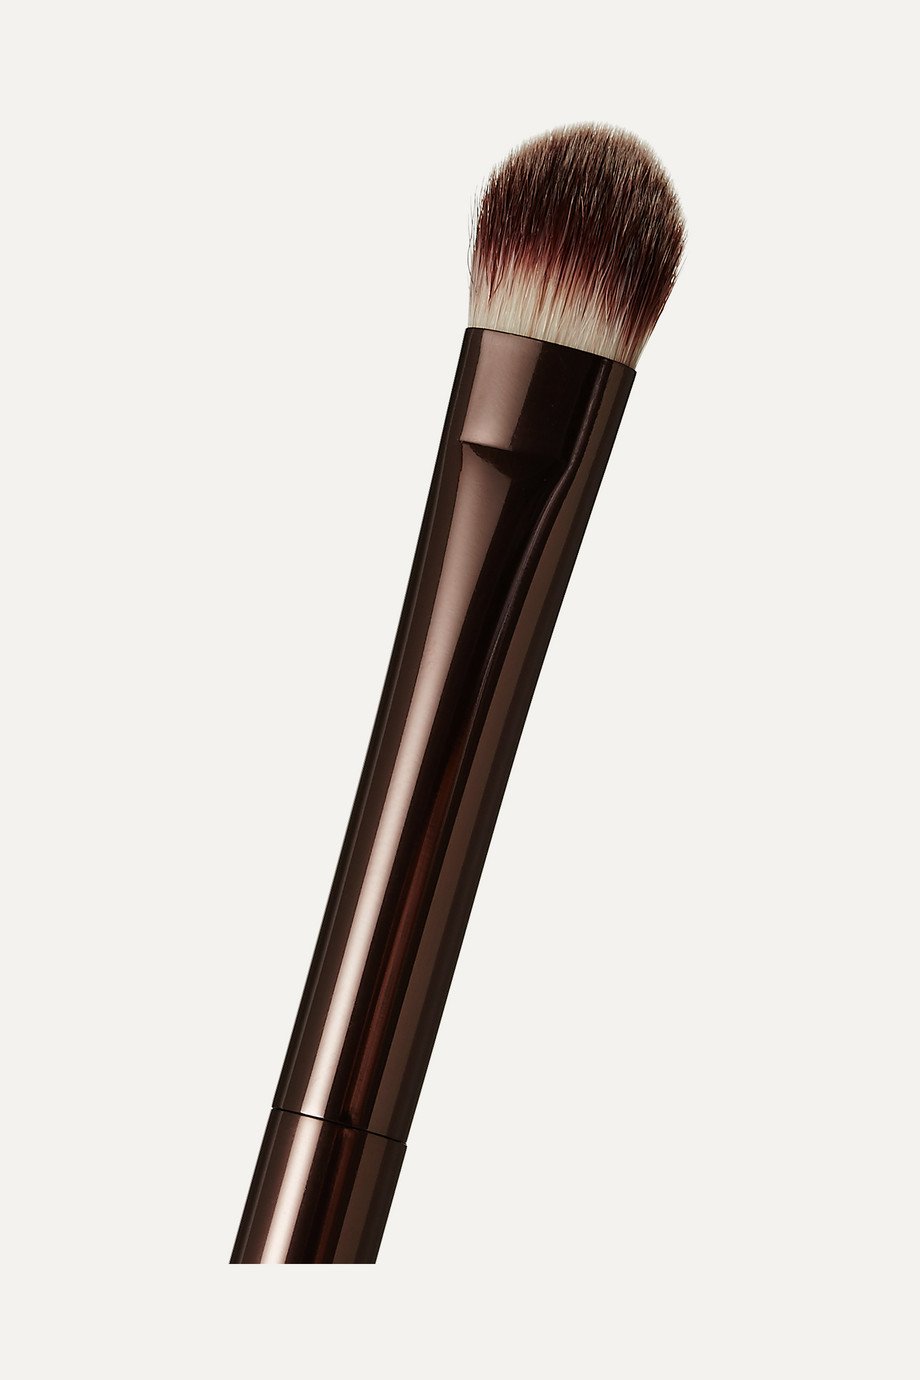 HOURGLASS Nº 3 All Over Shadow Brush